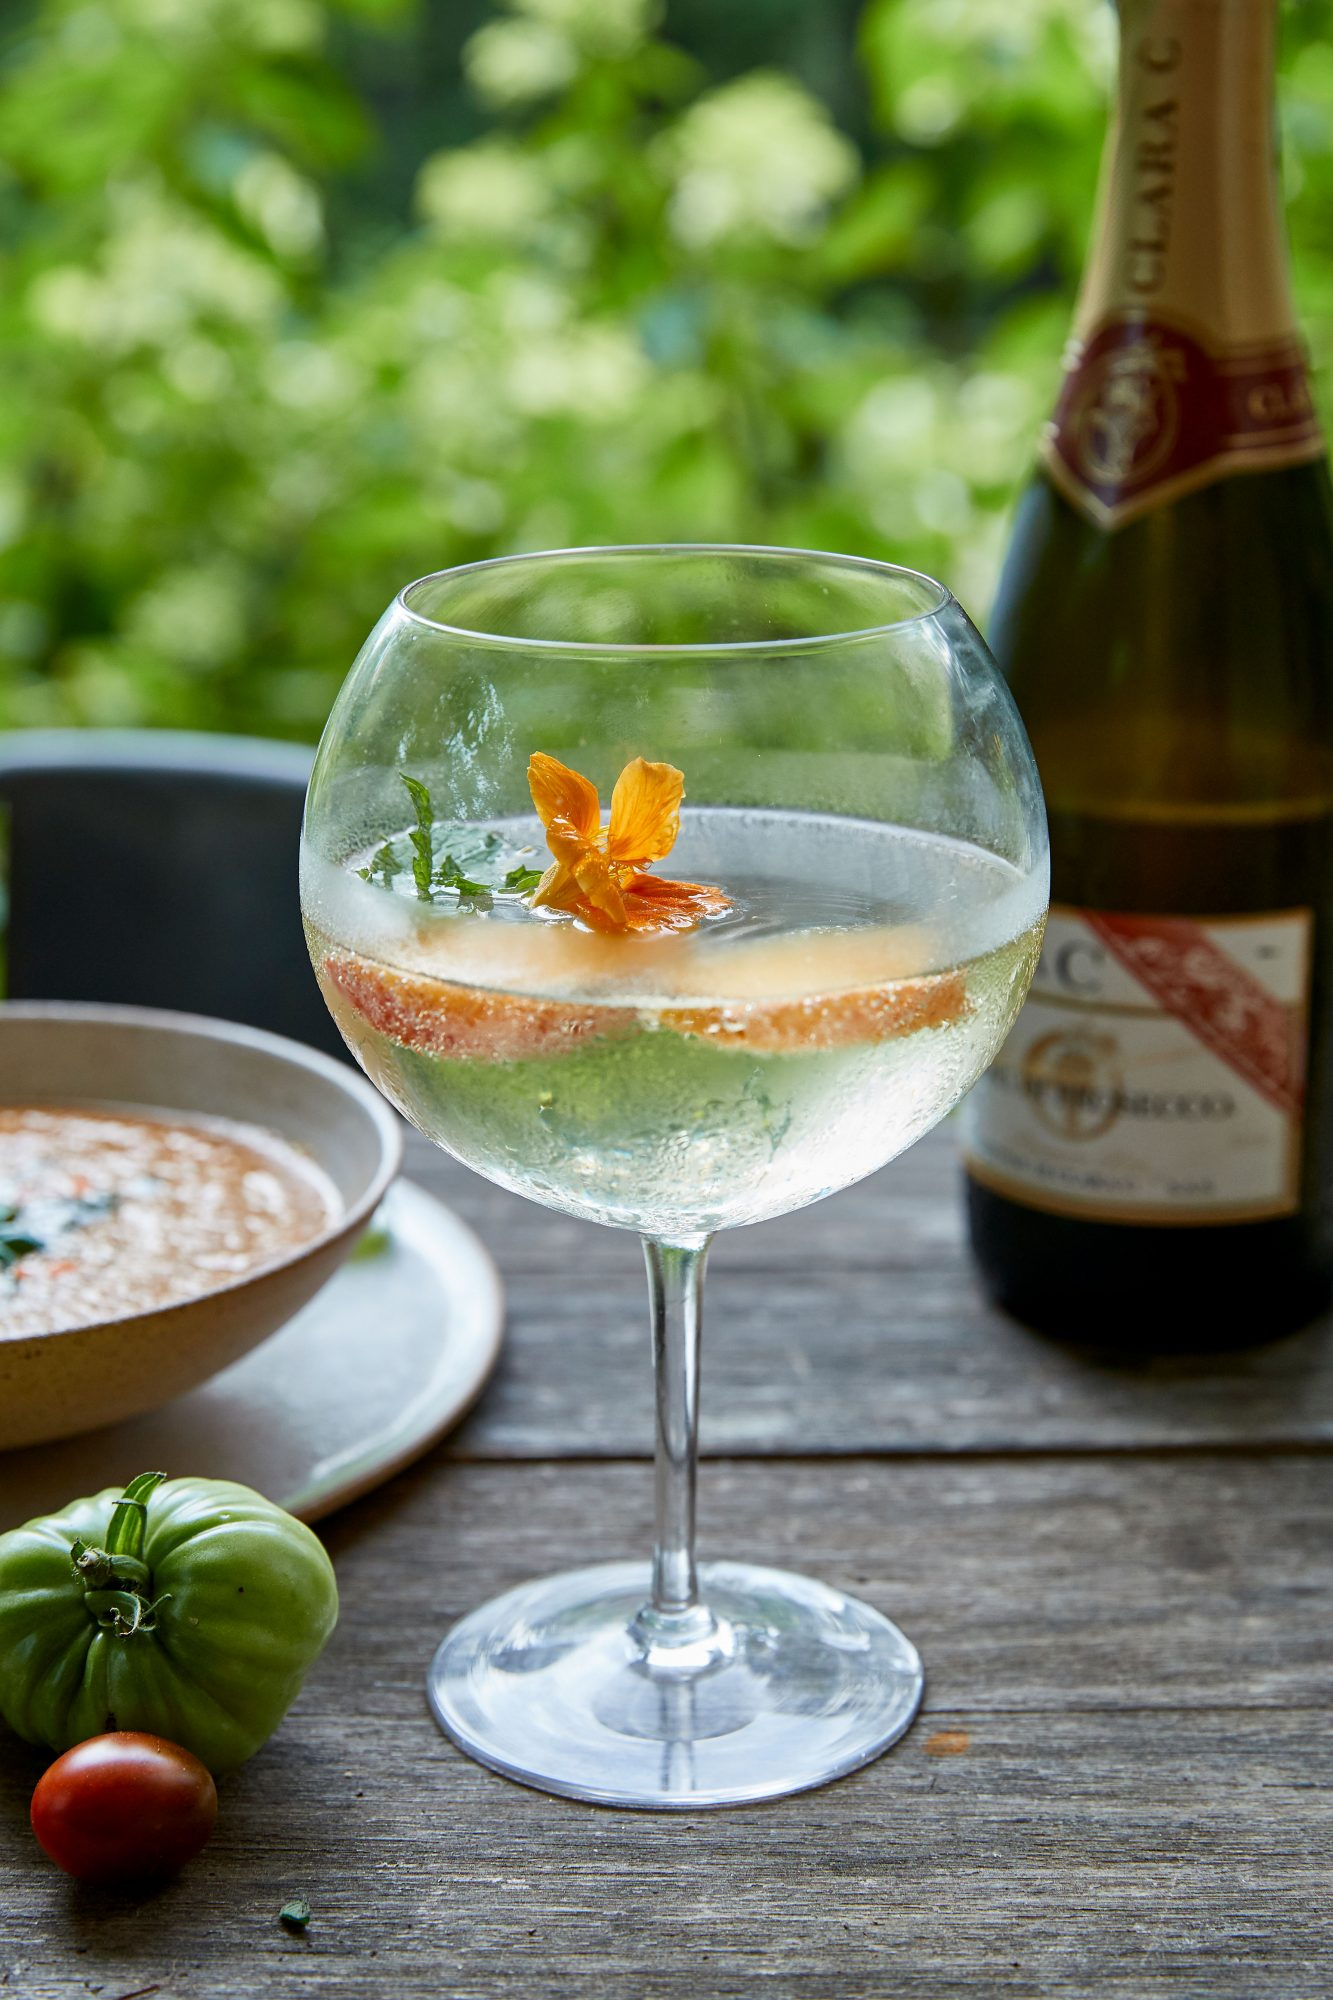 Lauren Liess Cocktail: Prosecco SpritzerGarnished with Nasturtium Petals and Peach Slices